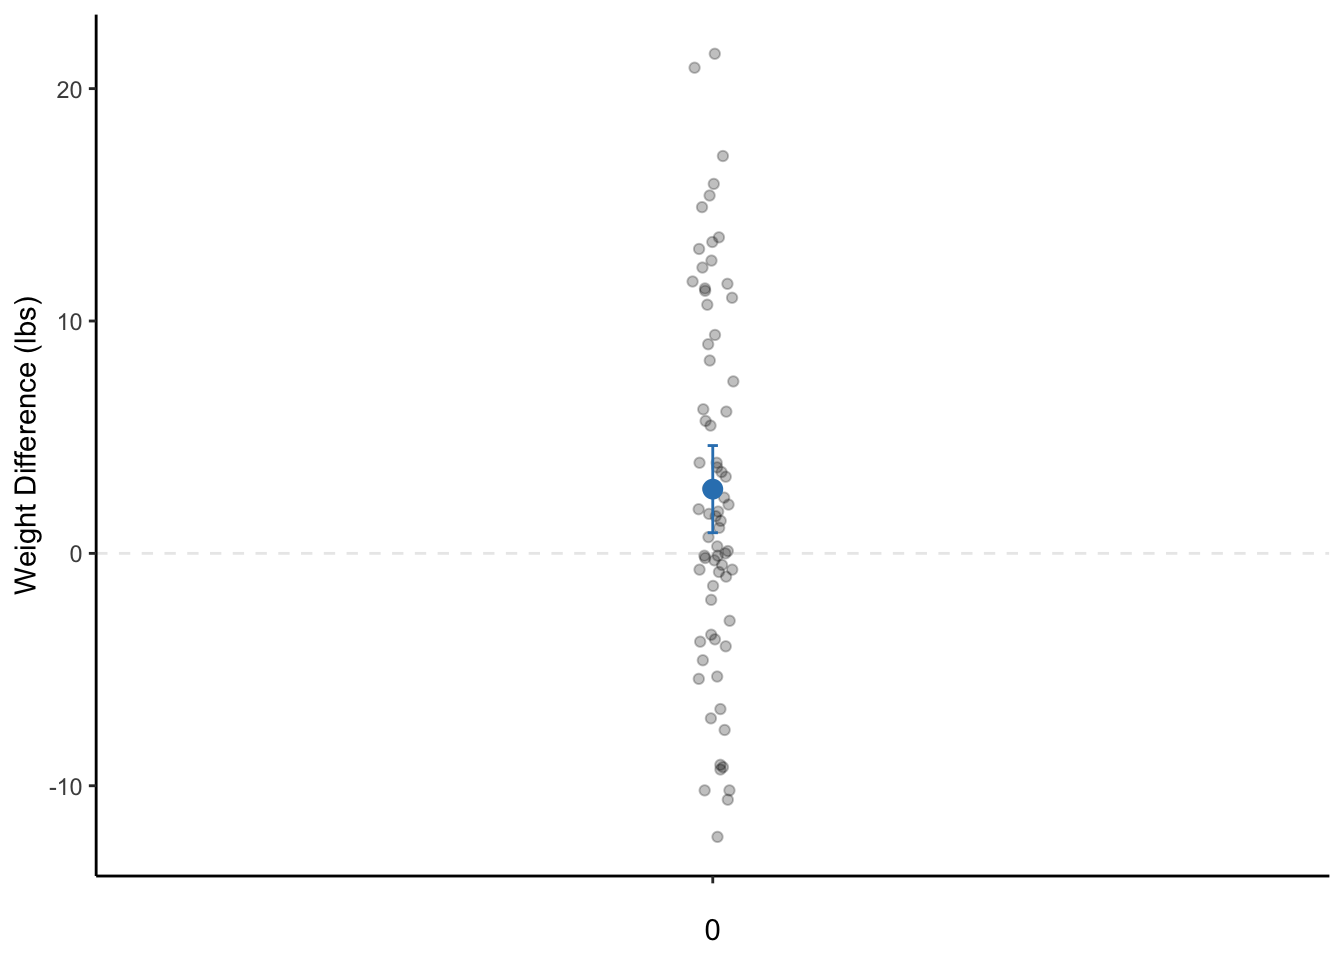 A dot plot of the weight change of female patients with anorexia before and after the study. The dot is the mean weight change and the bars represent the 95% CI.  Note: The data points are actually only on a single line on the x-axis. They are only jittered (dispersed) for easier visualization of all data points.